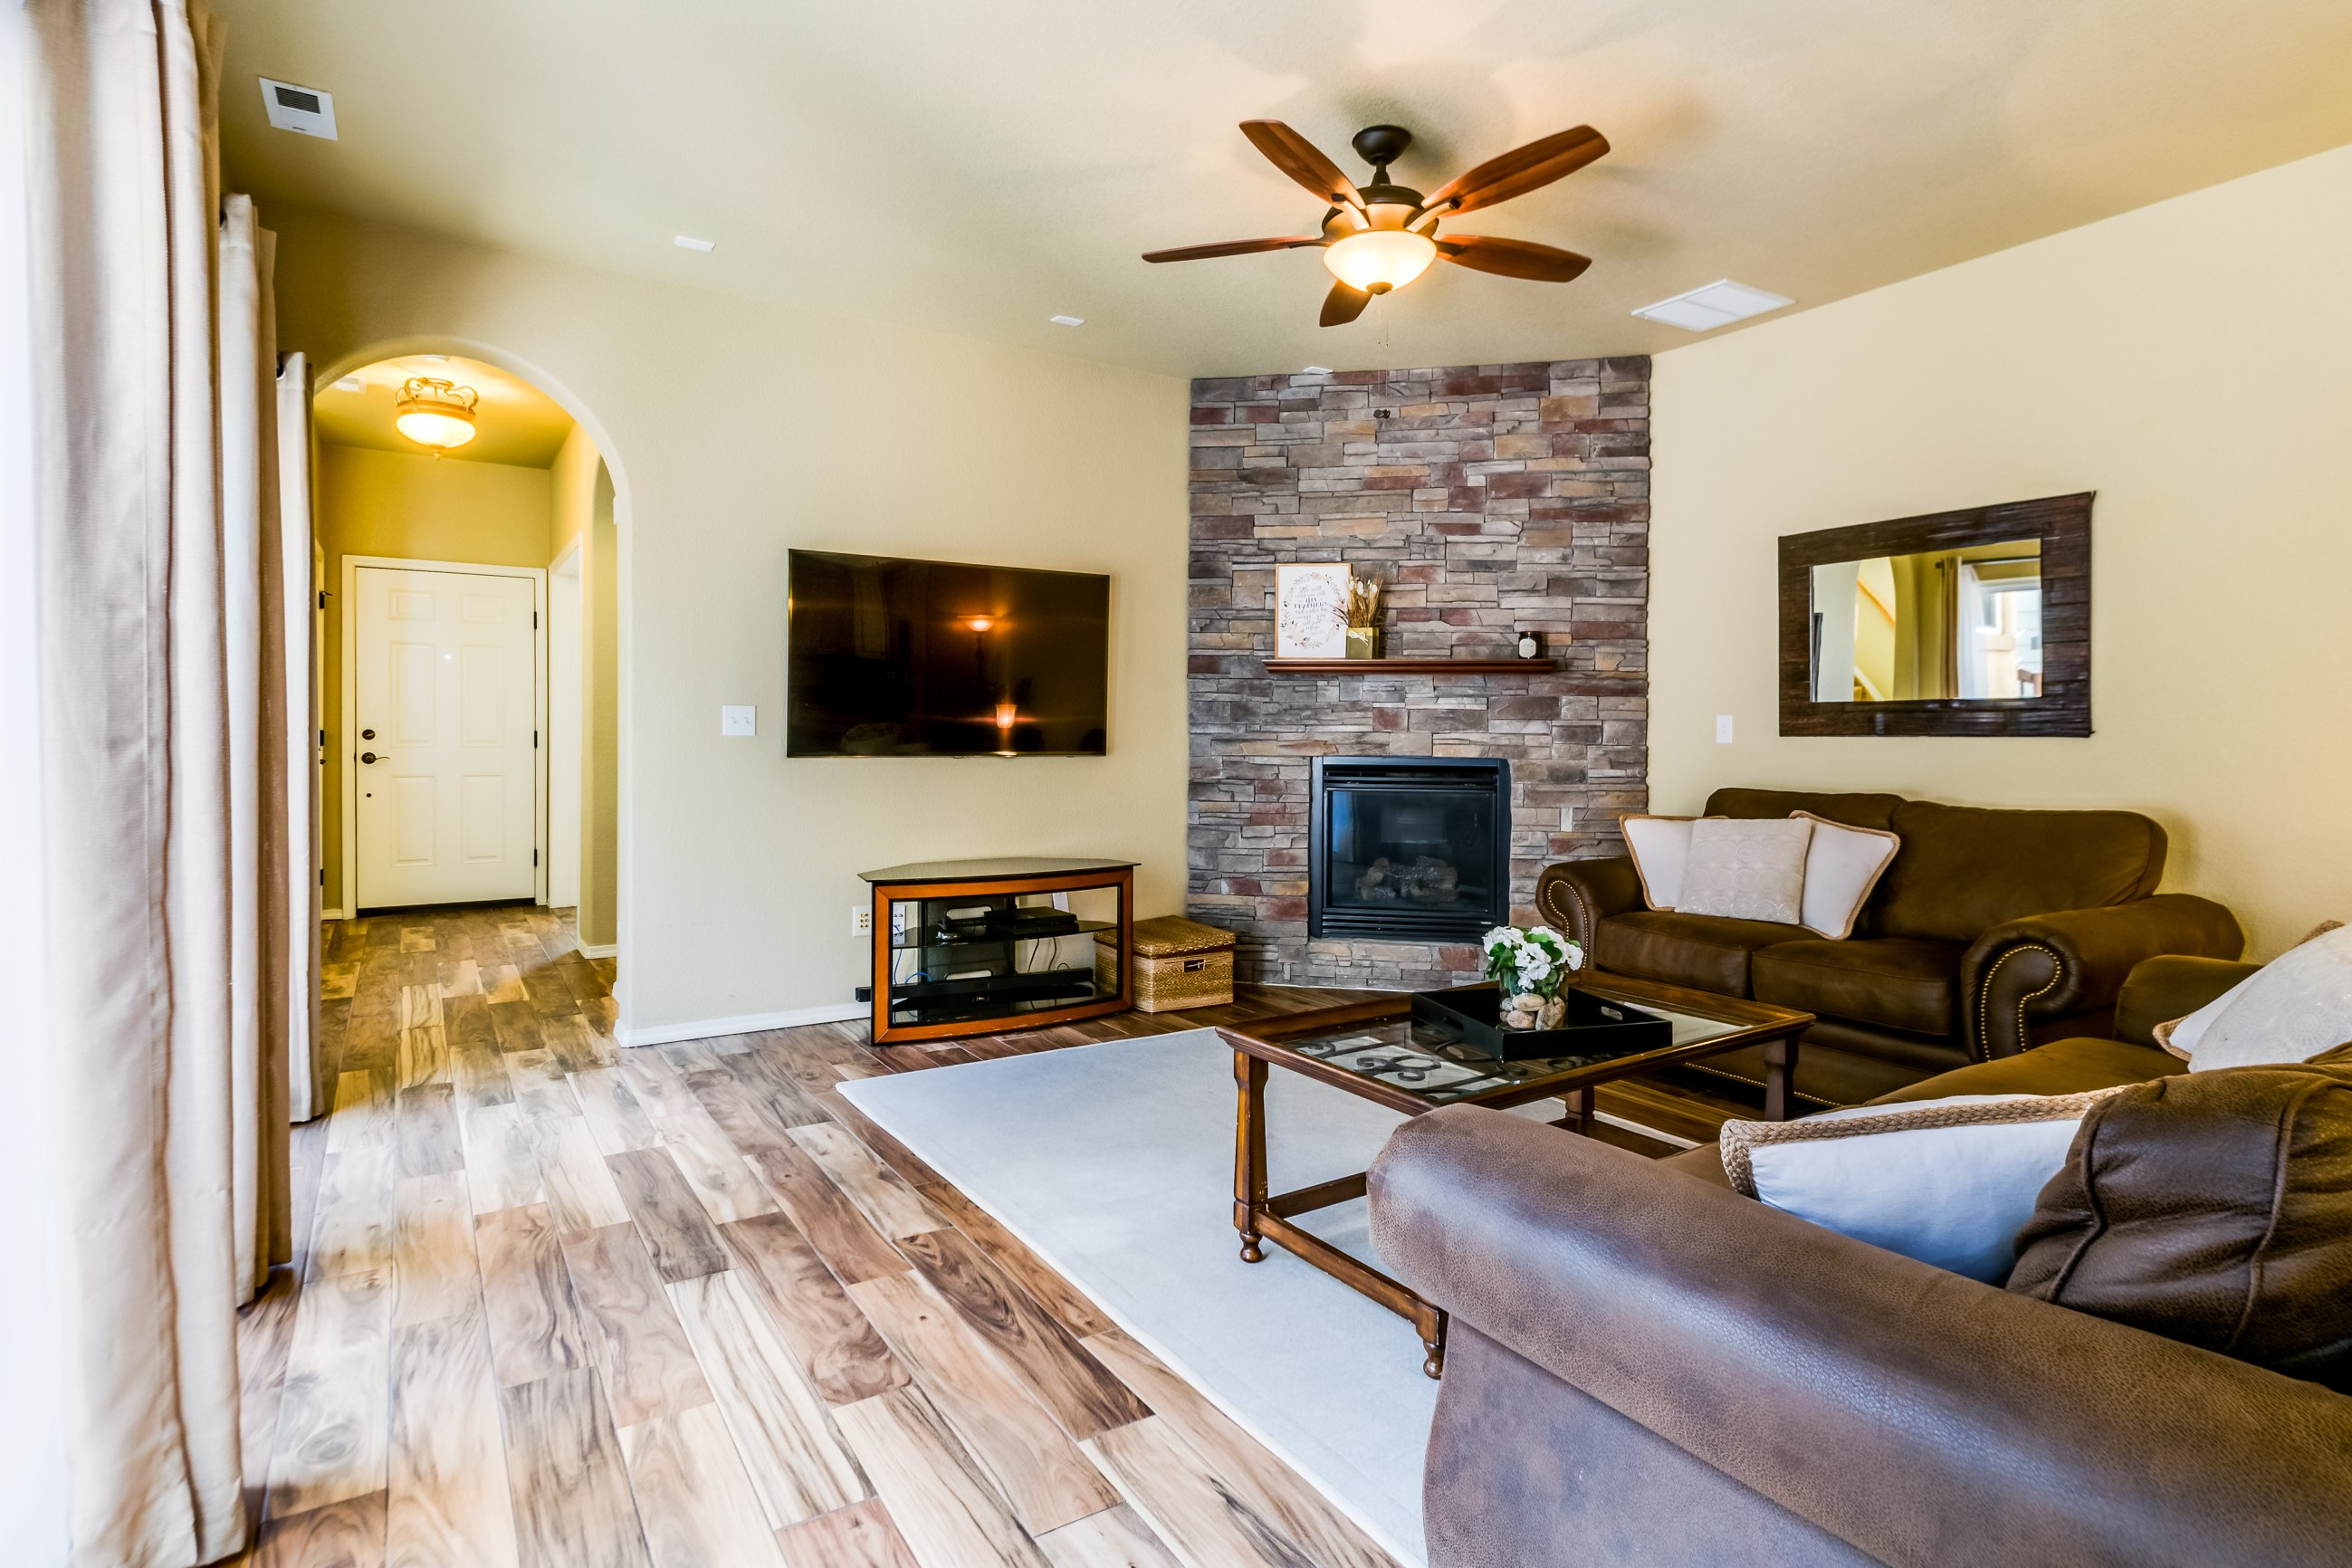 Gold Hill Mesa condo for sale, picture of fireplace/living room area